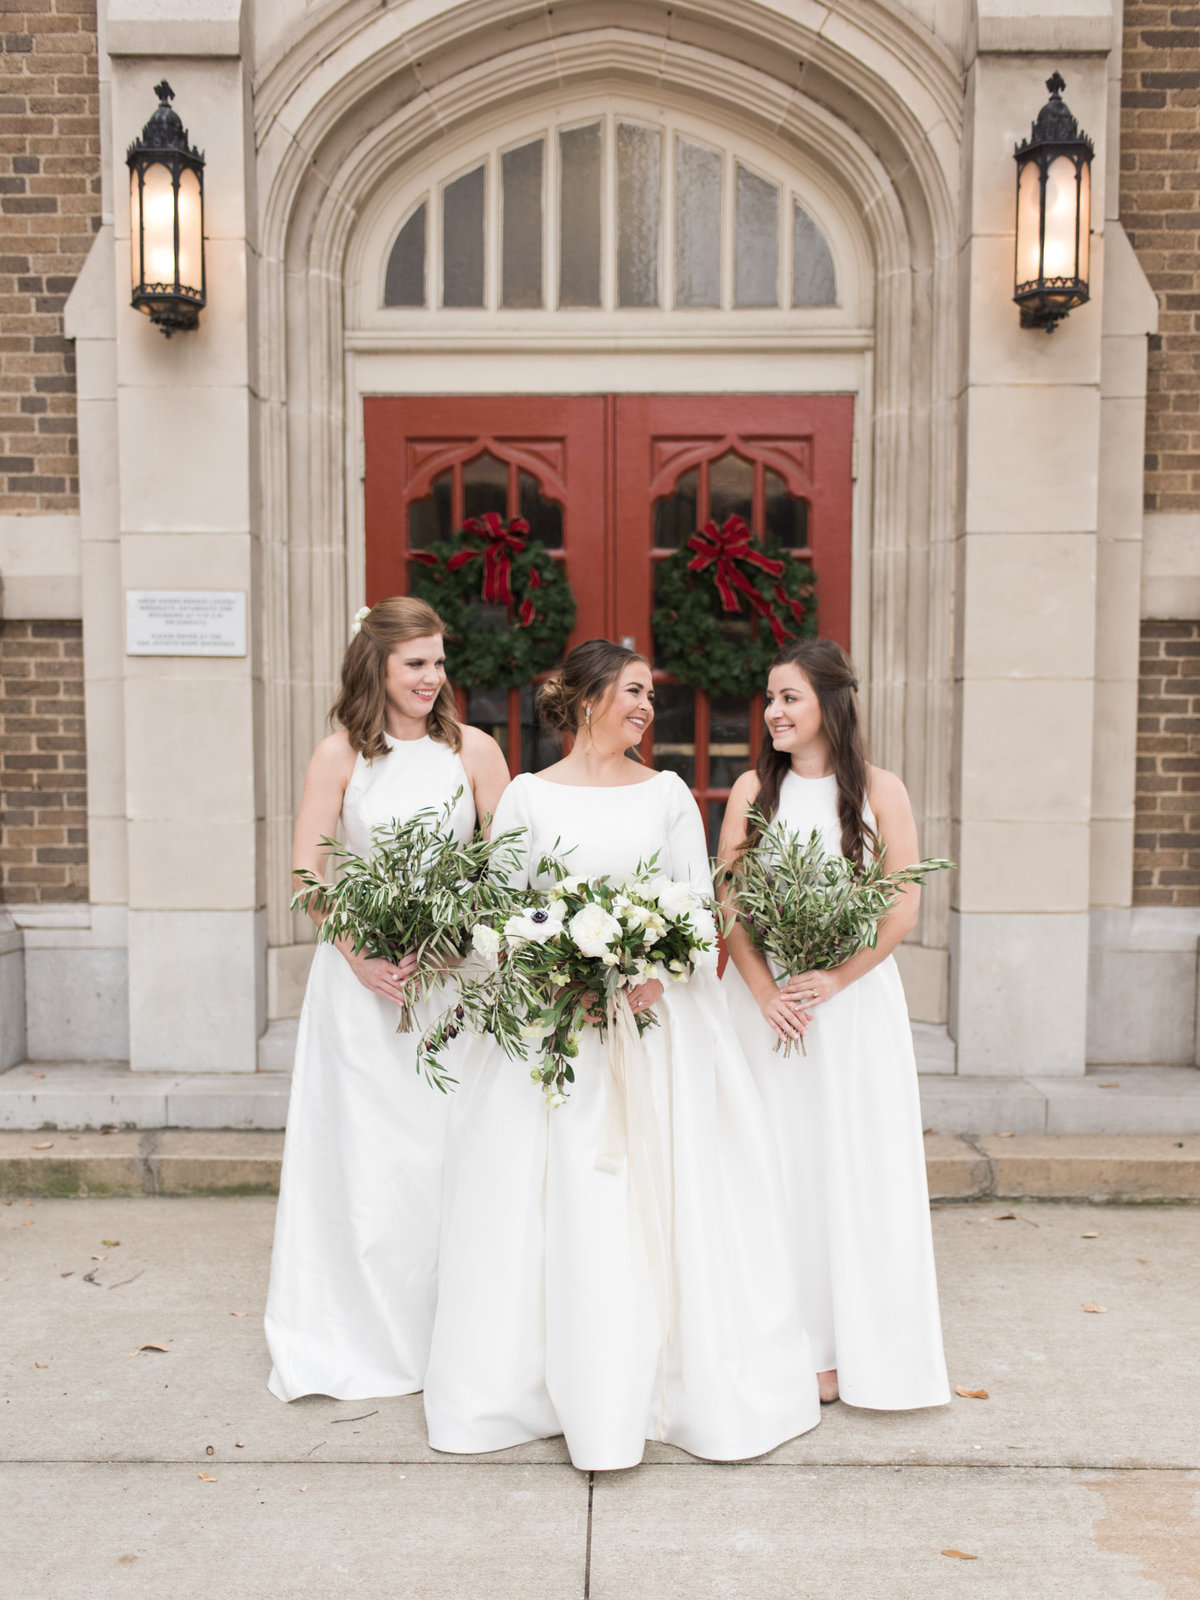 Courtney Hanson Photography - Festive Holiday Wedding in Dallas at Hickory Street Annex-0050